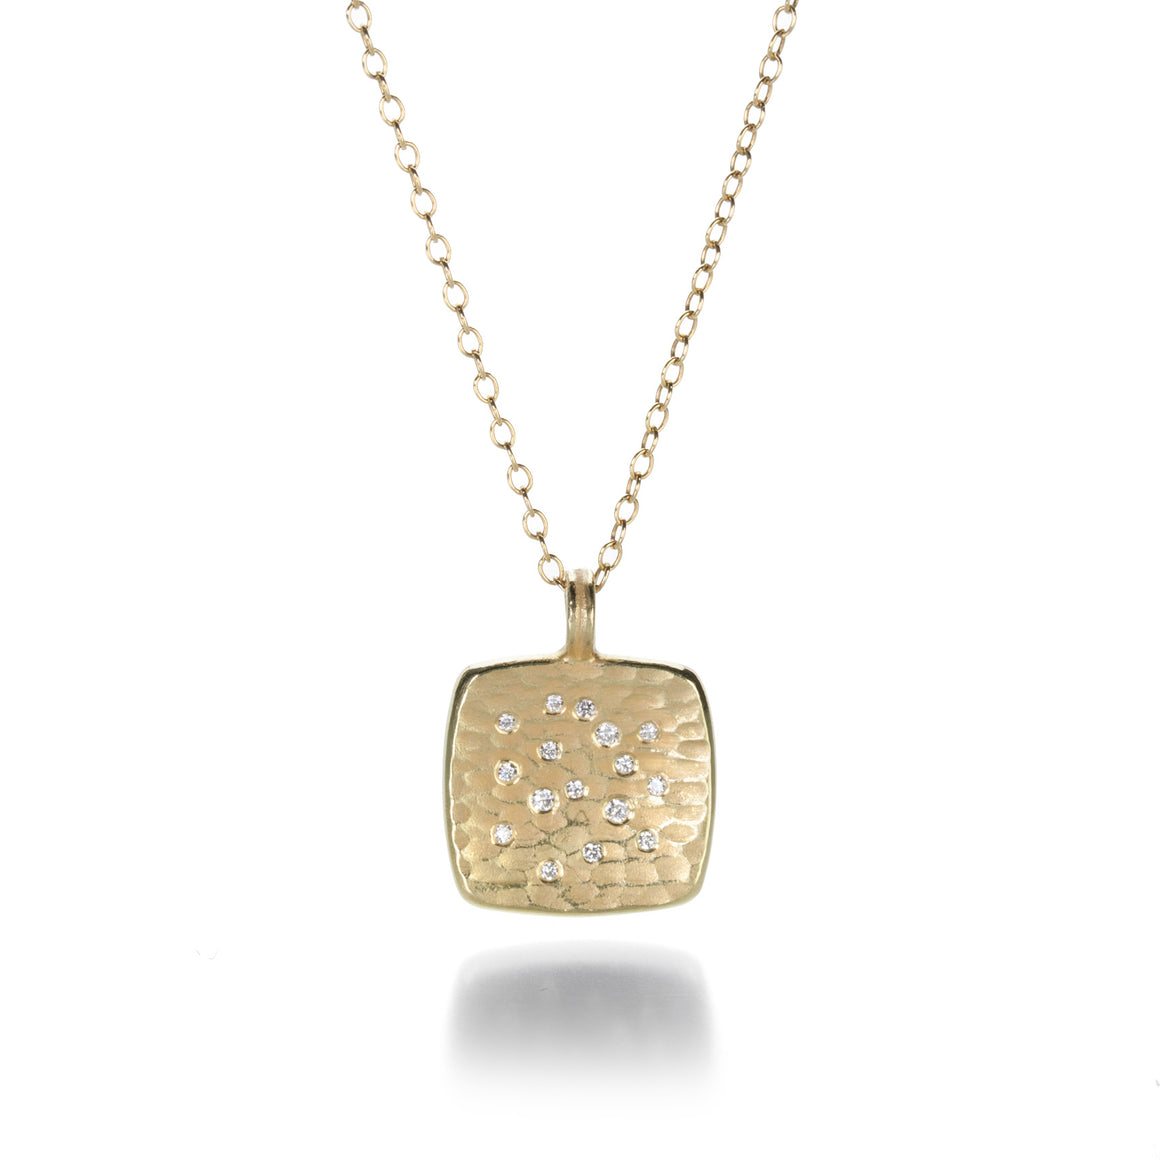 Barbara Heinrich Glacier Necklace with Scattered Diamonds | Quadrum Gallery